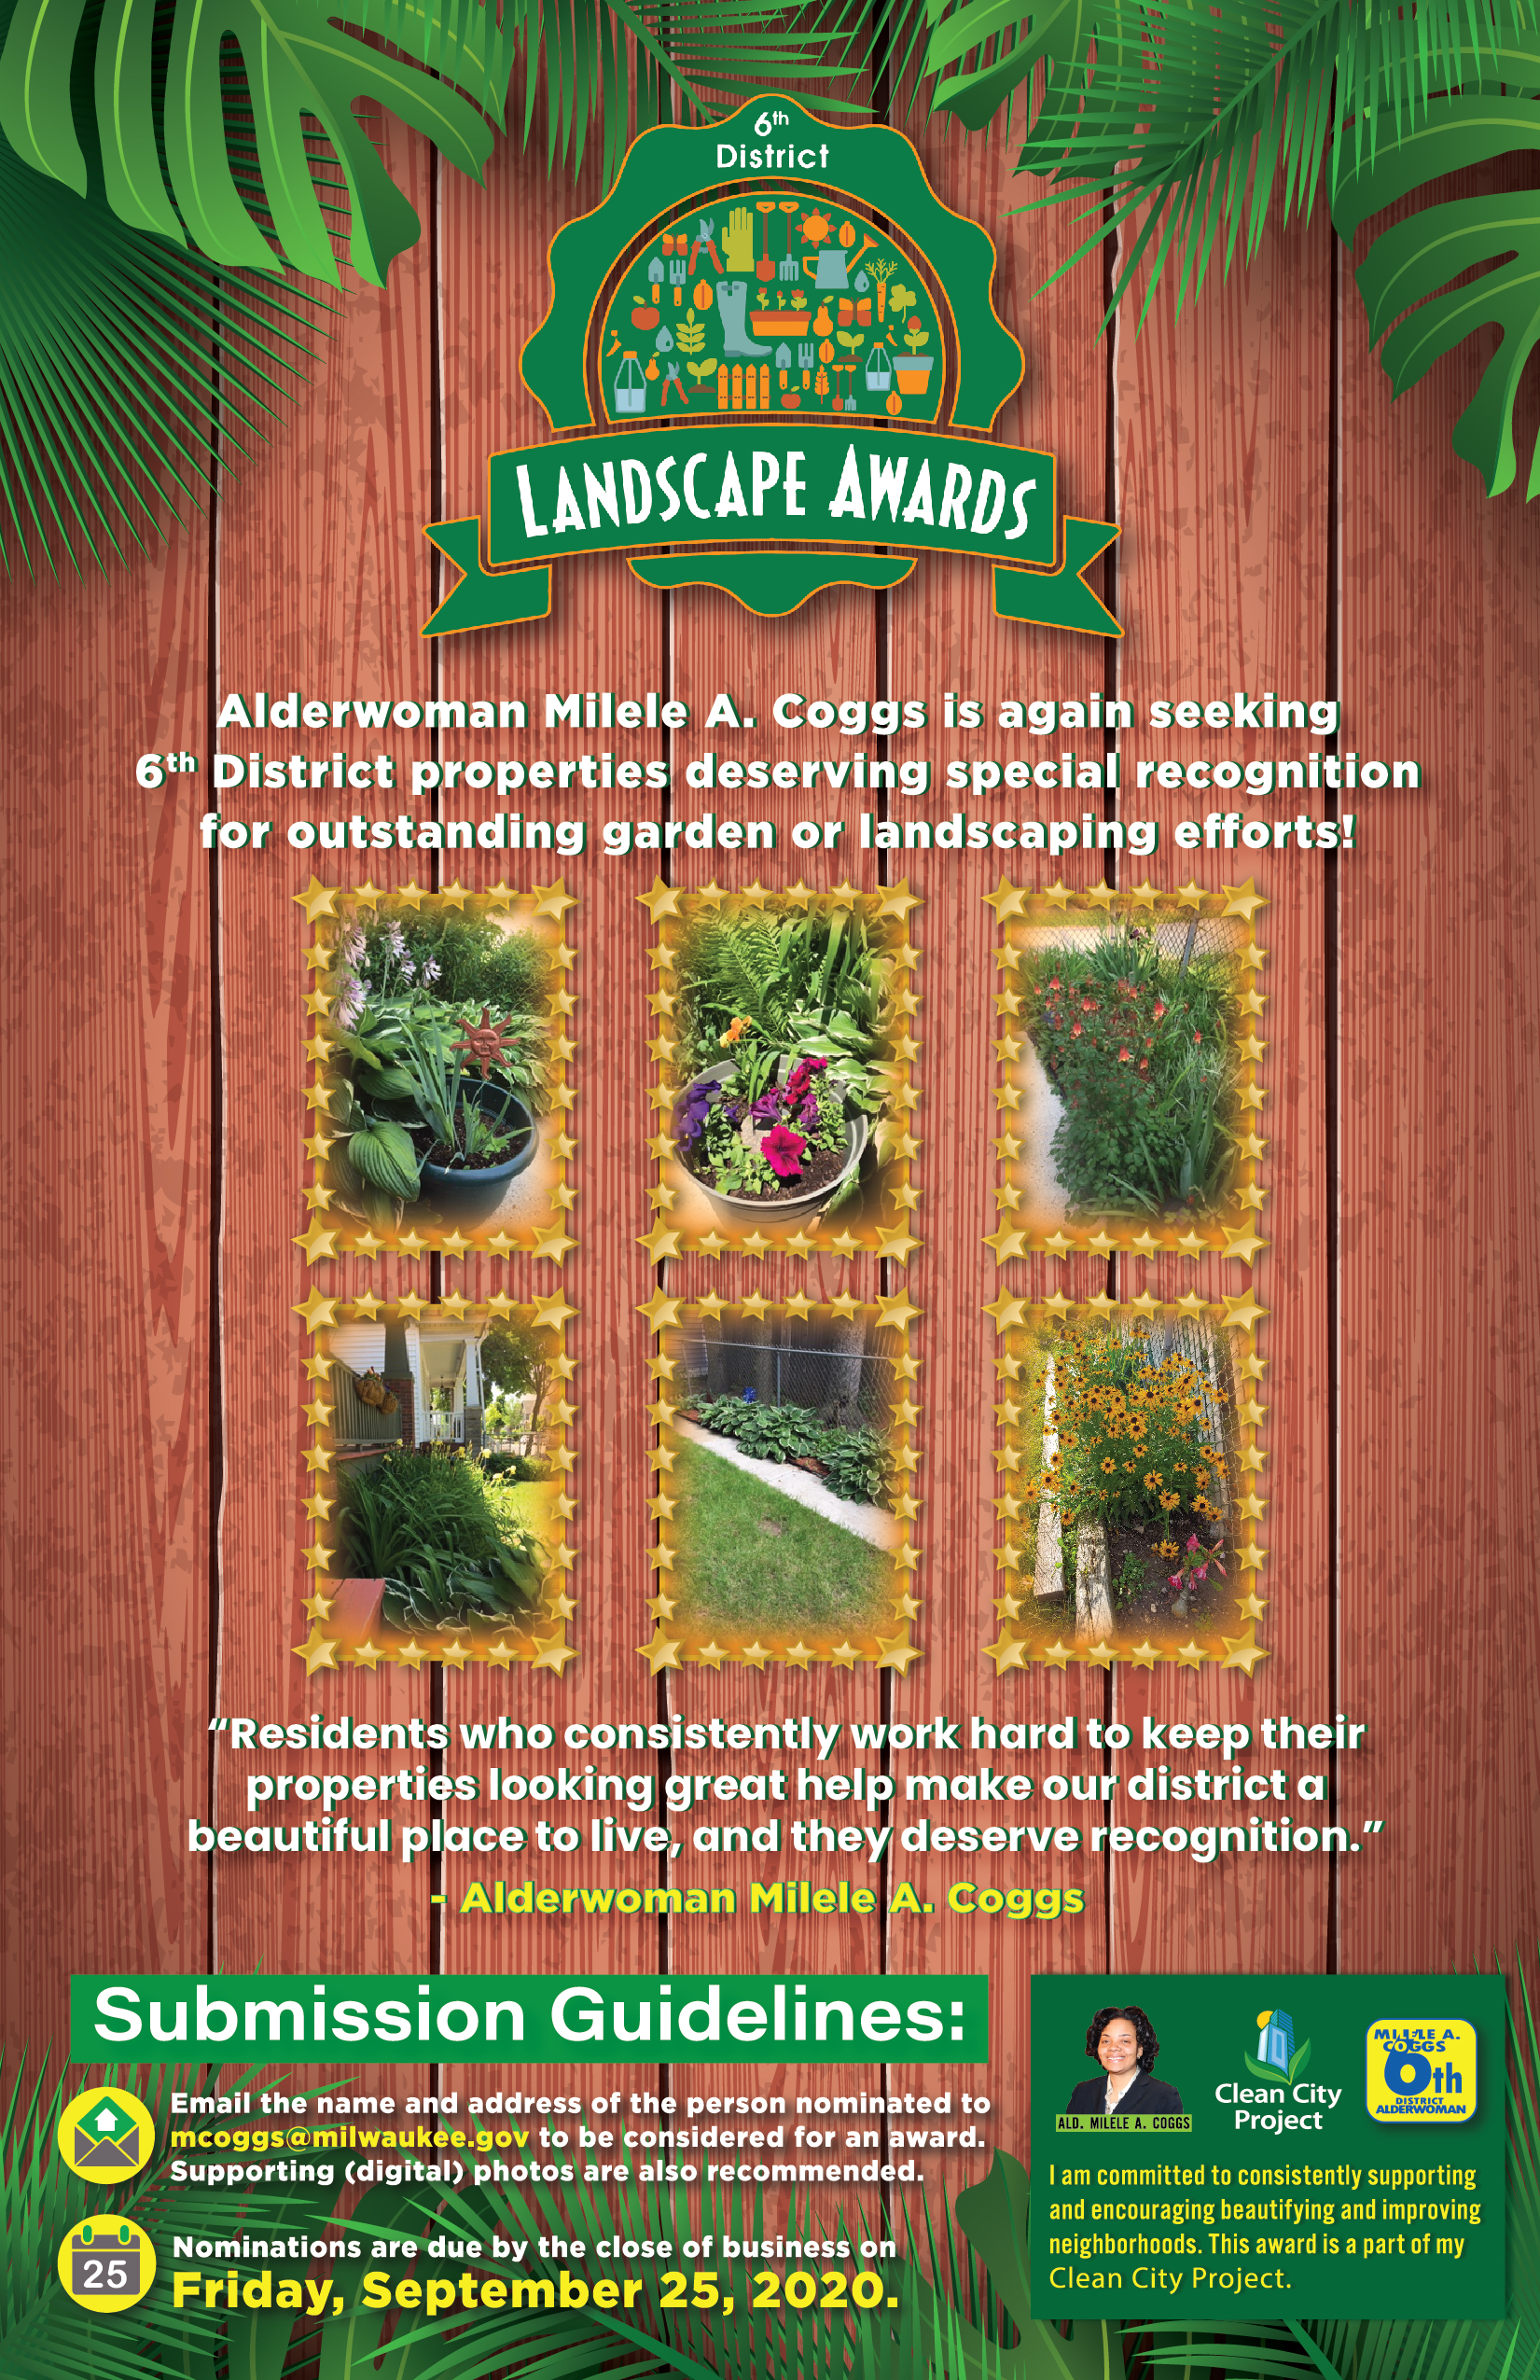 6th District Landscape Awards deadline fast approaching